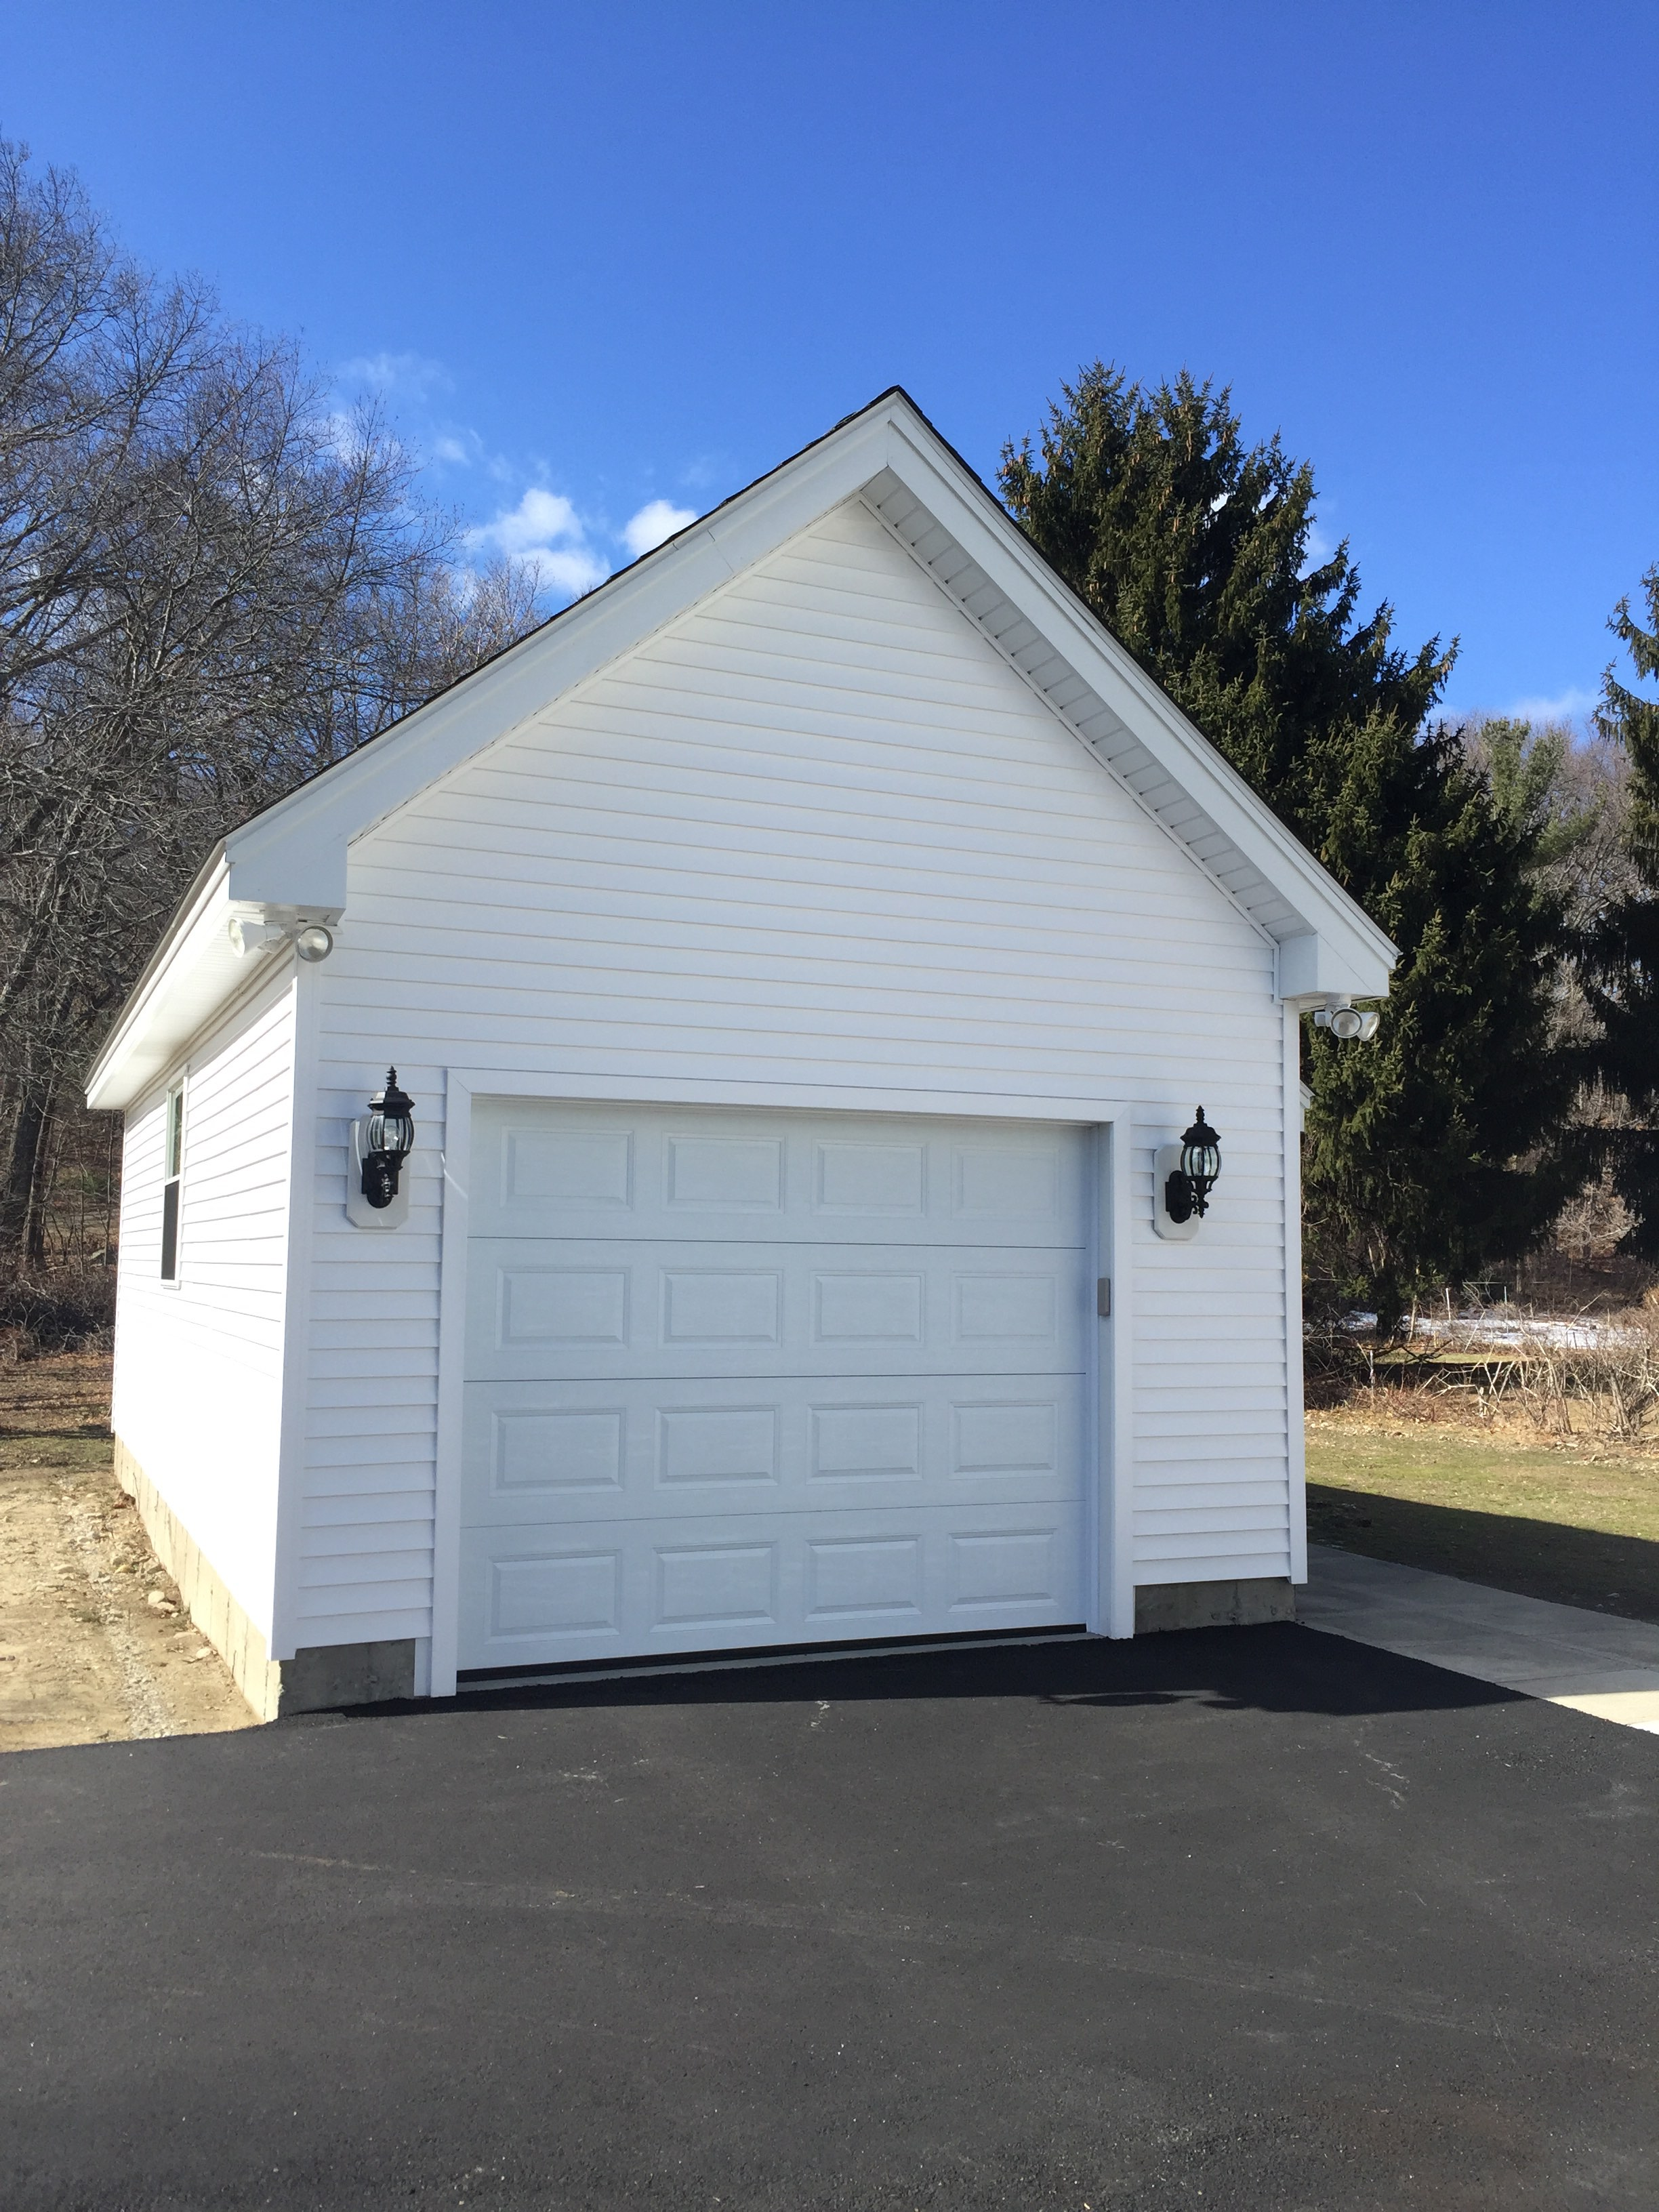 Building a new garage in millbury general contracting for Build a new garage